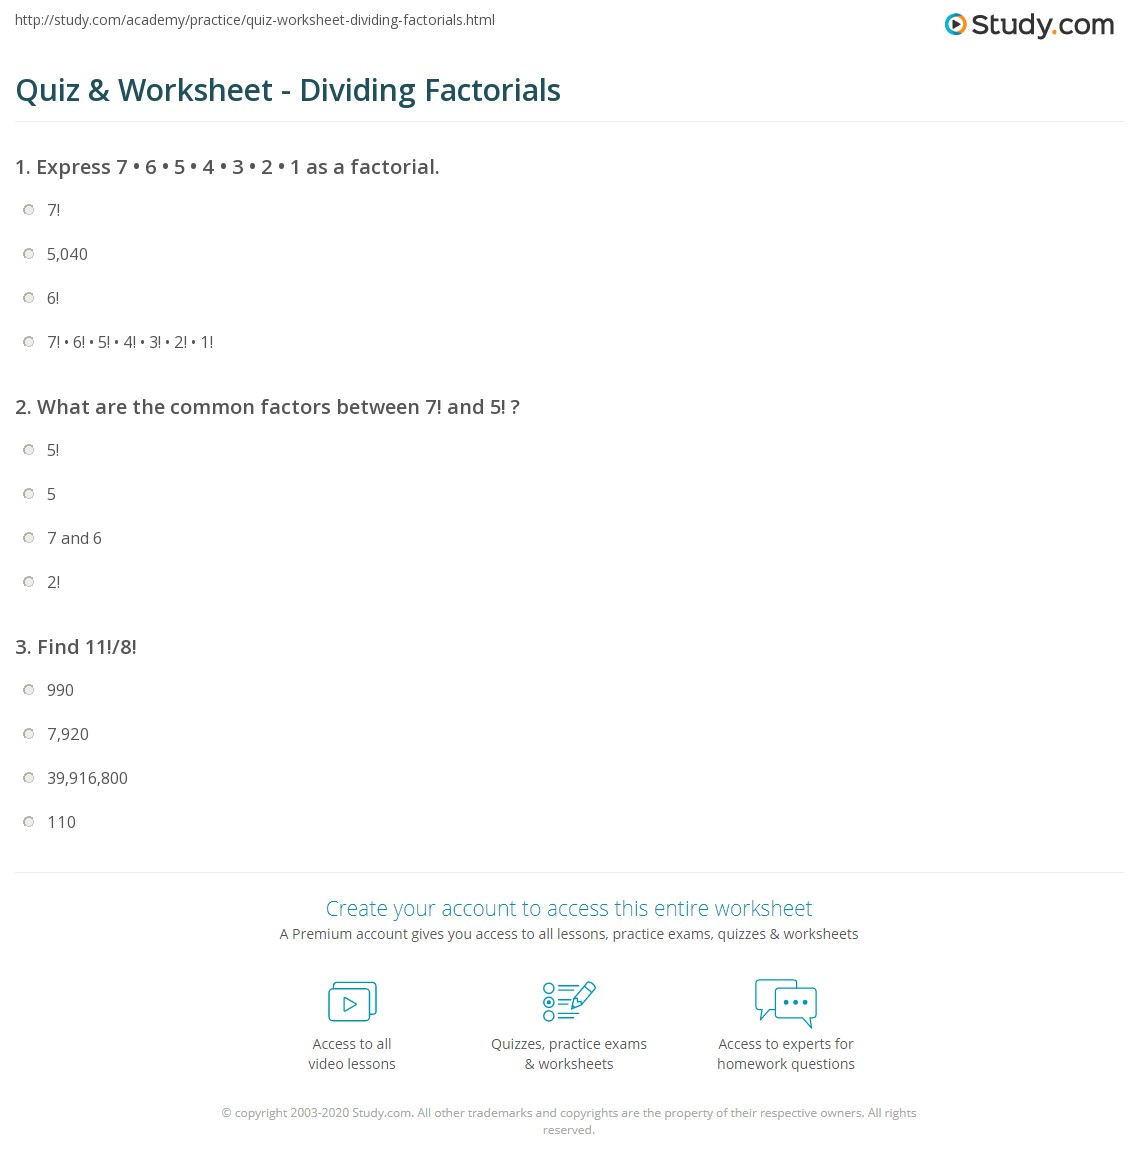 Quiz & Worksheet Dividing Factorials